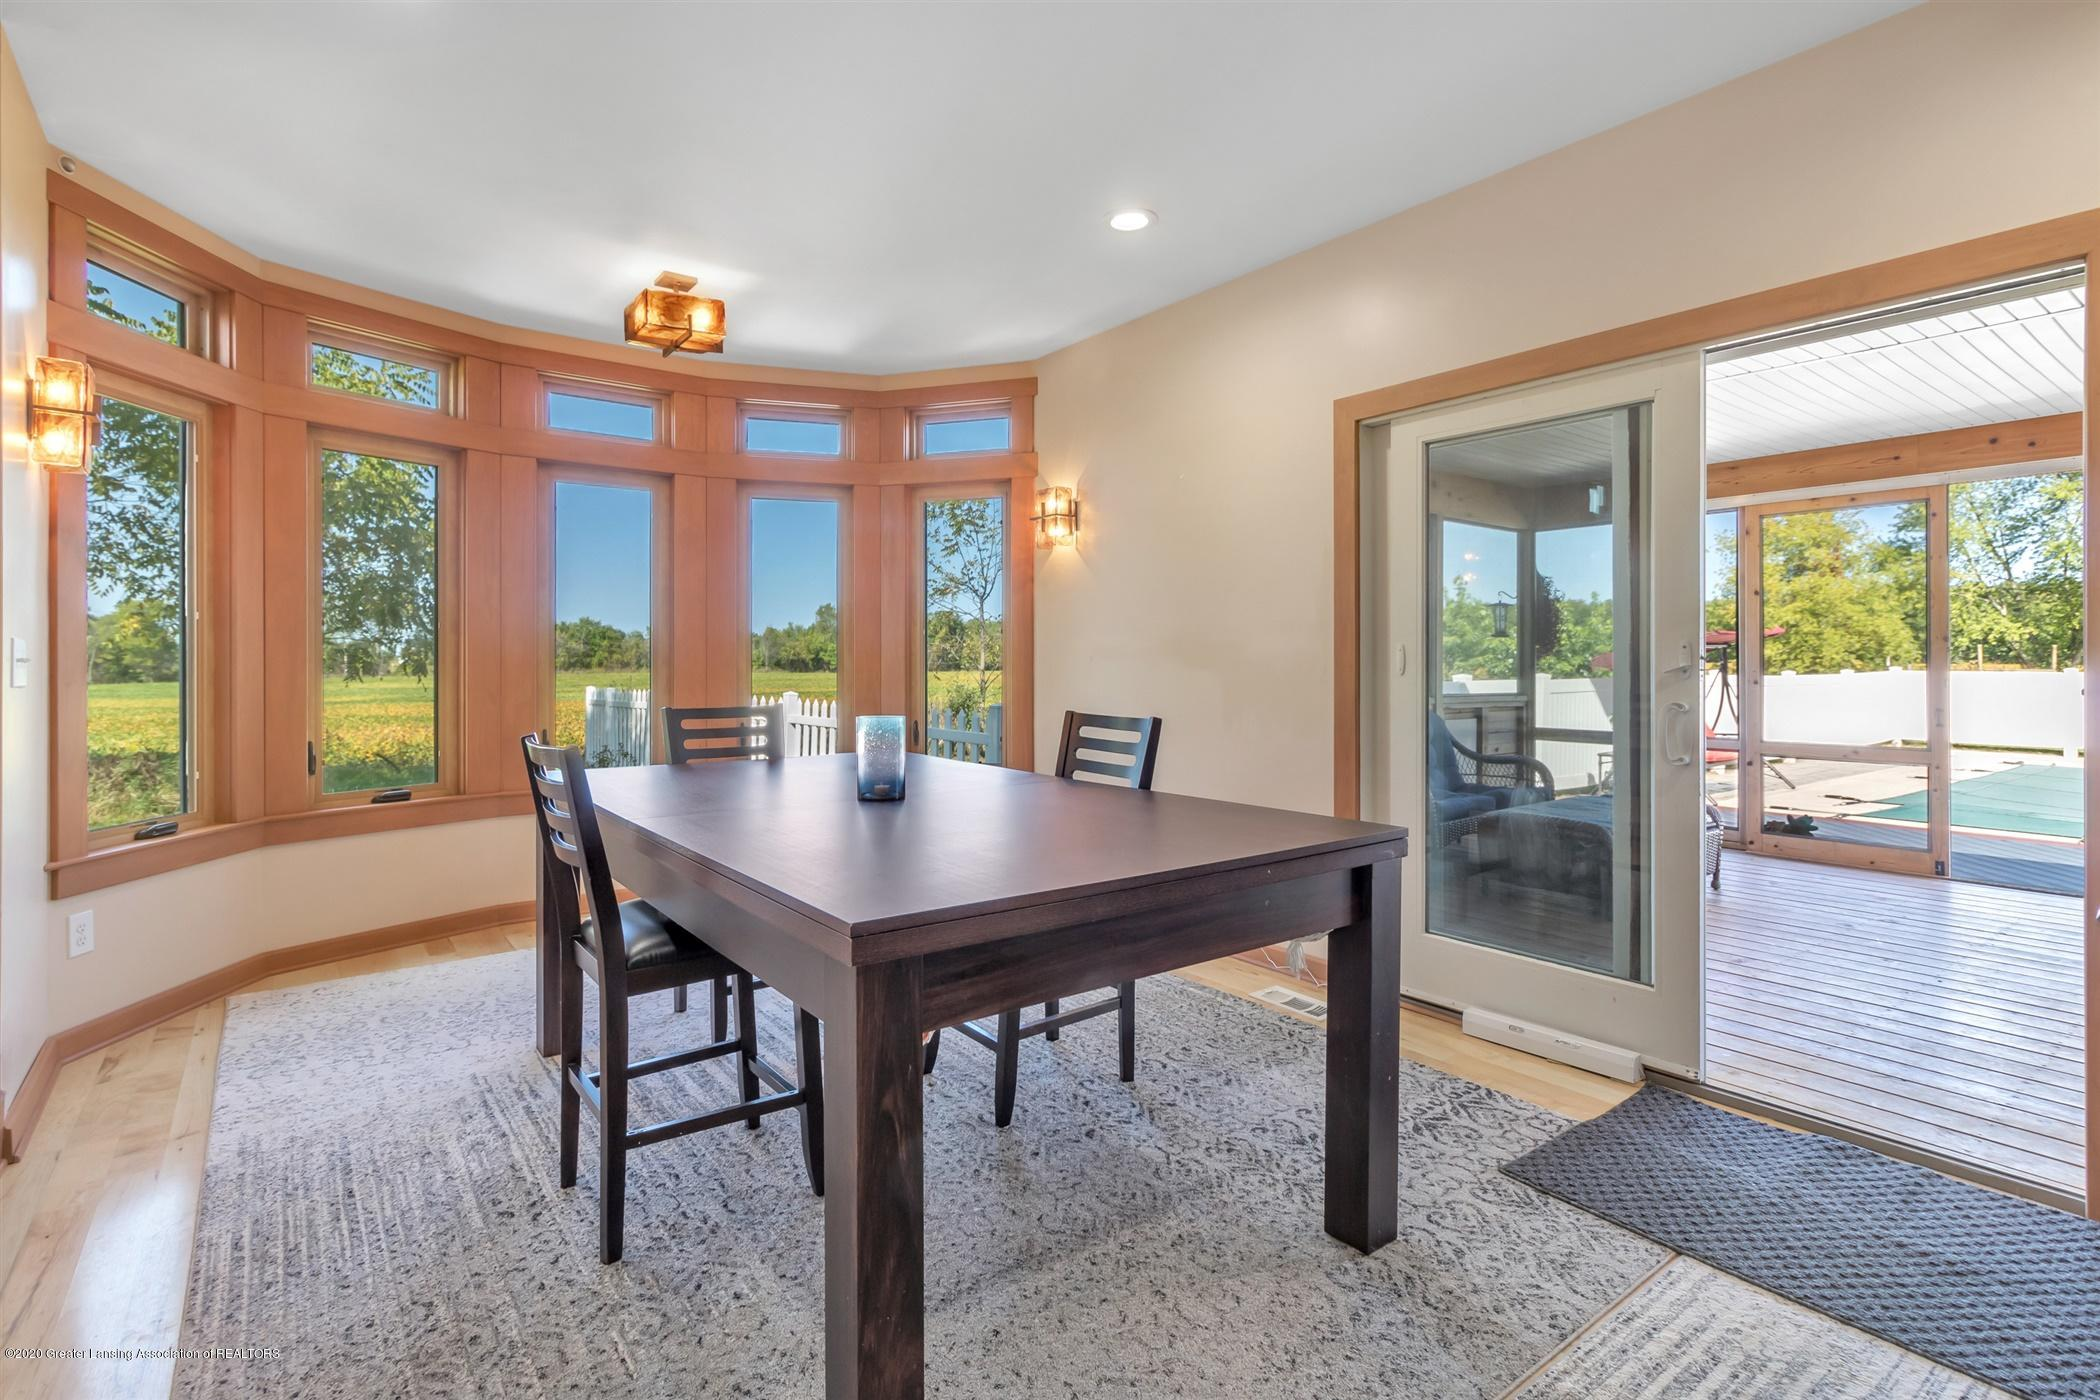 7346 W Cutler Rd - VIEWS OF SUNRISES AND SUNSETS - 17